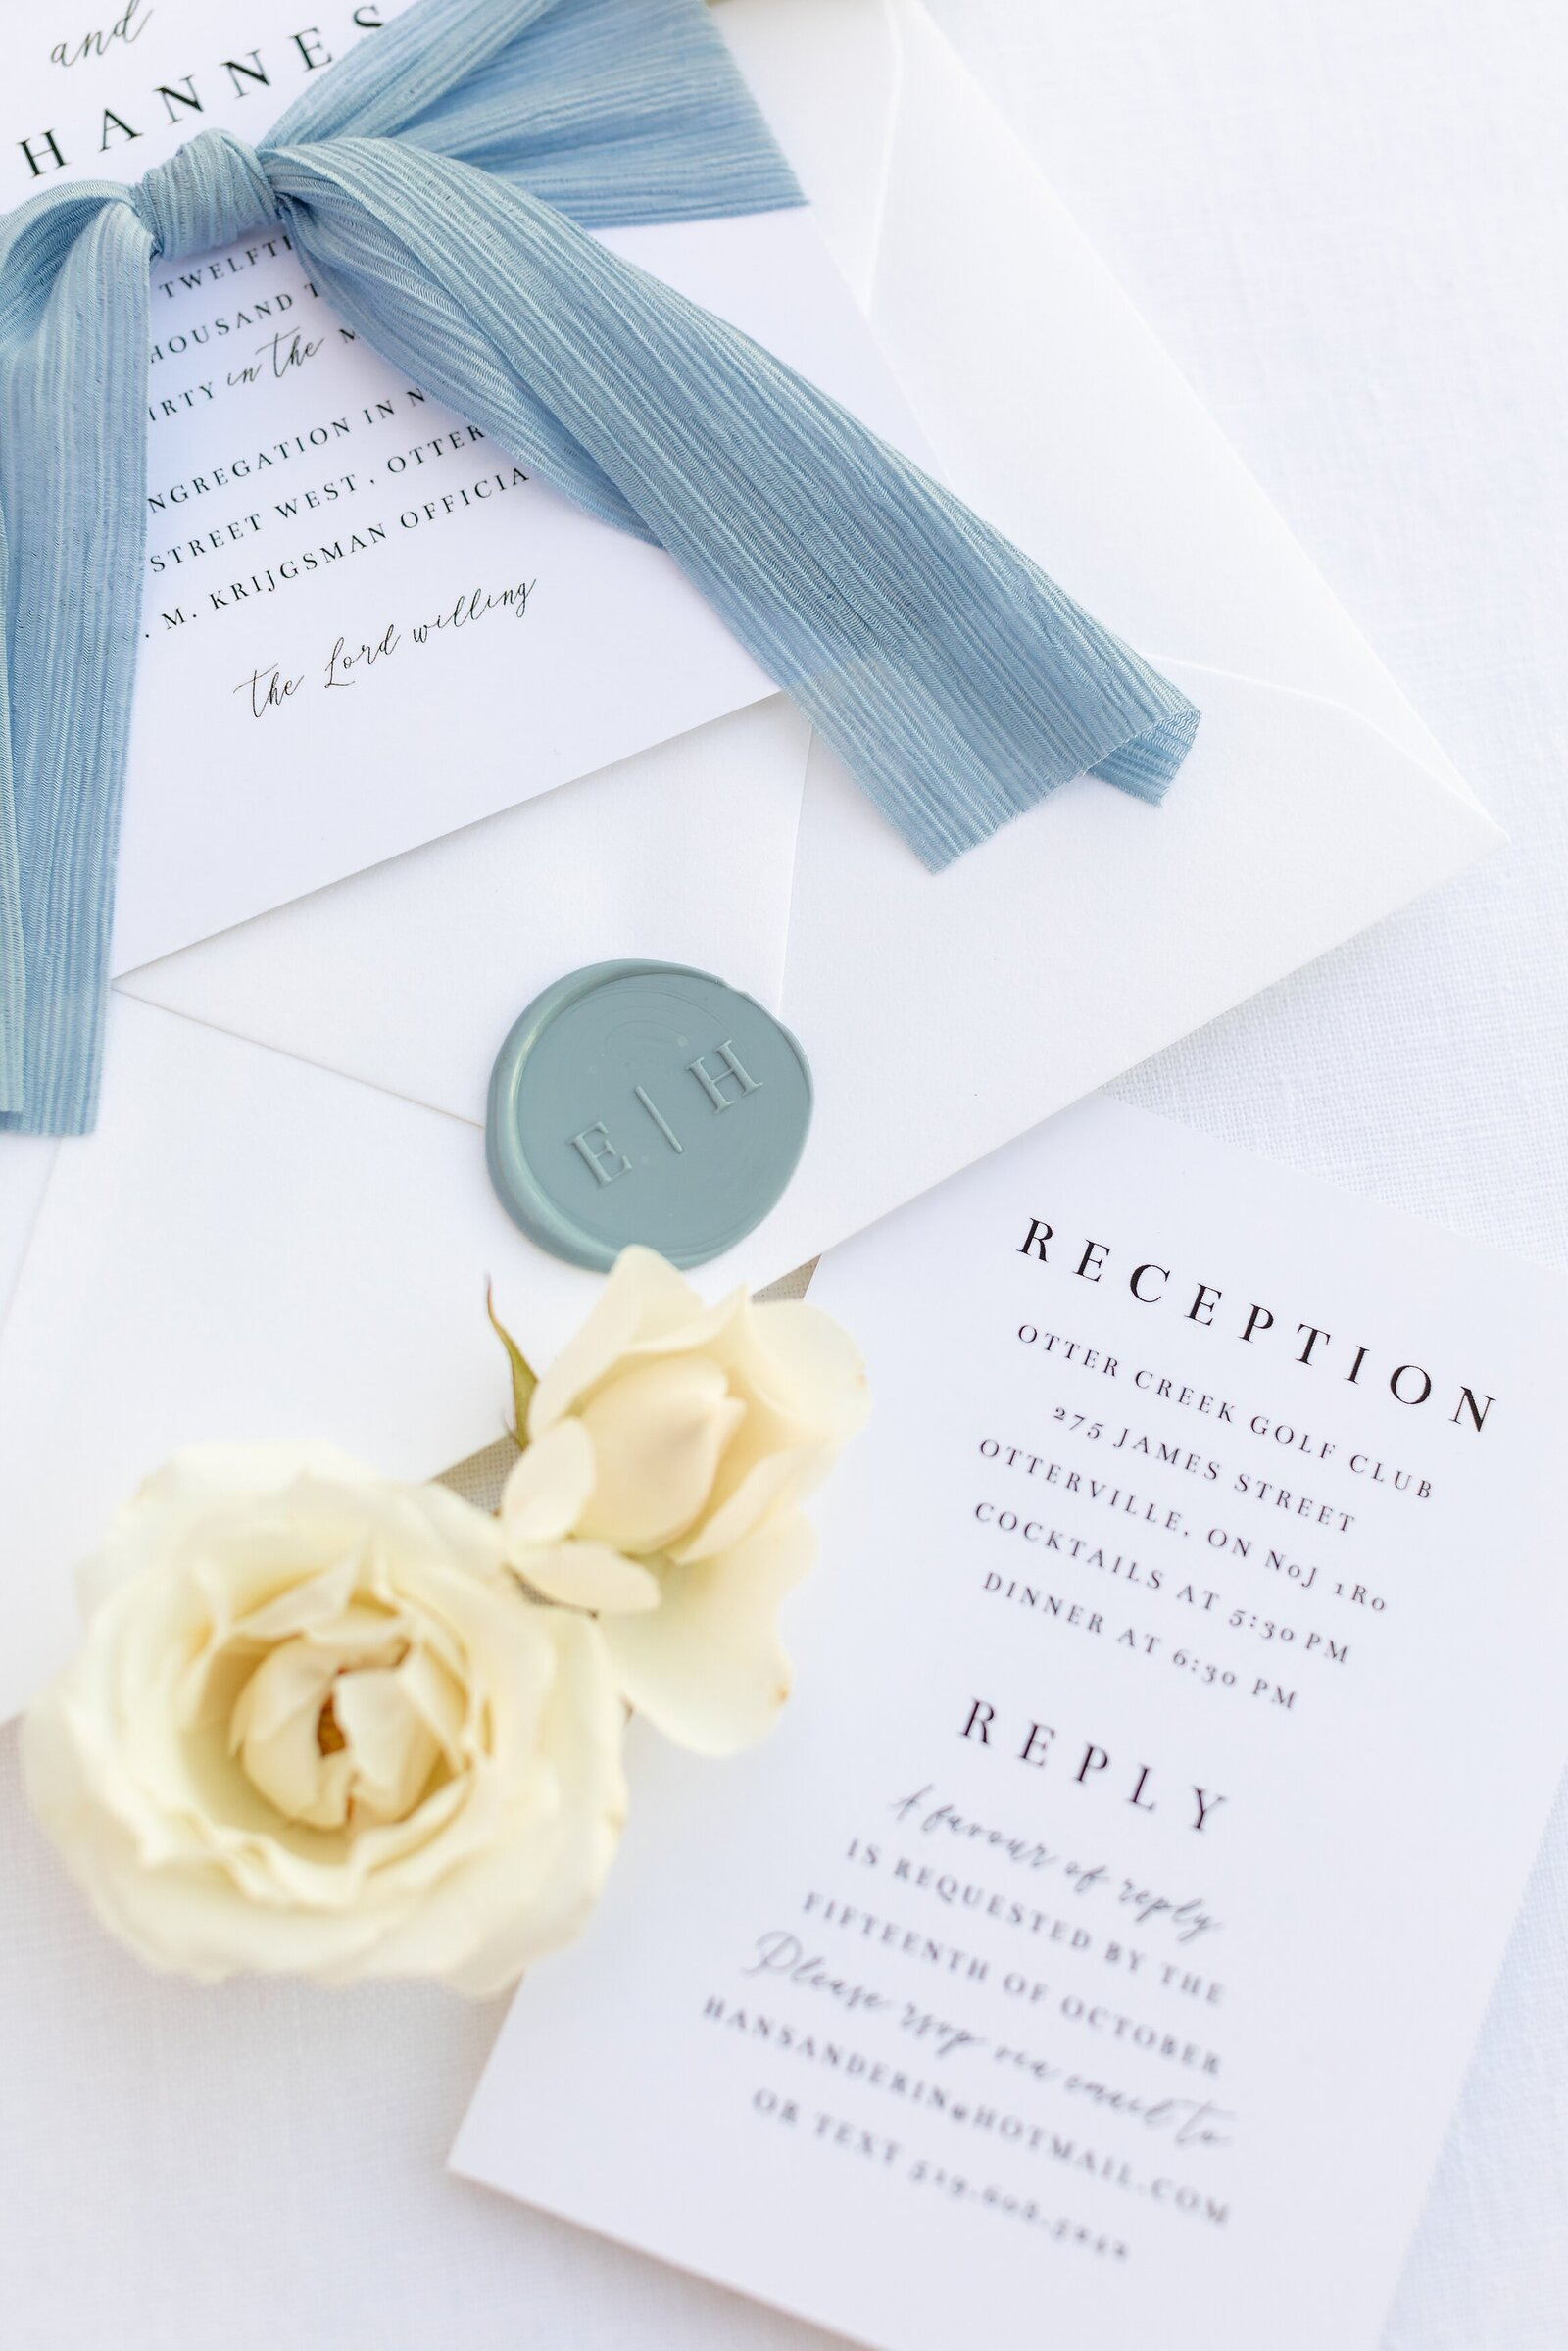 Lavendar-and-lace-designed-wedding-invitations-light-blue-flatlay